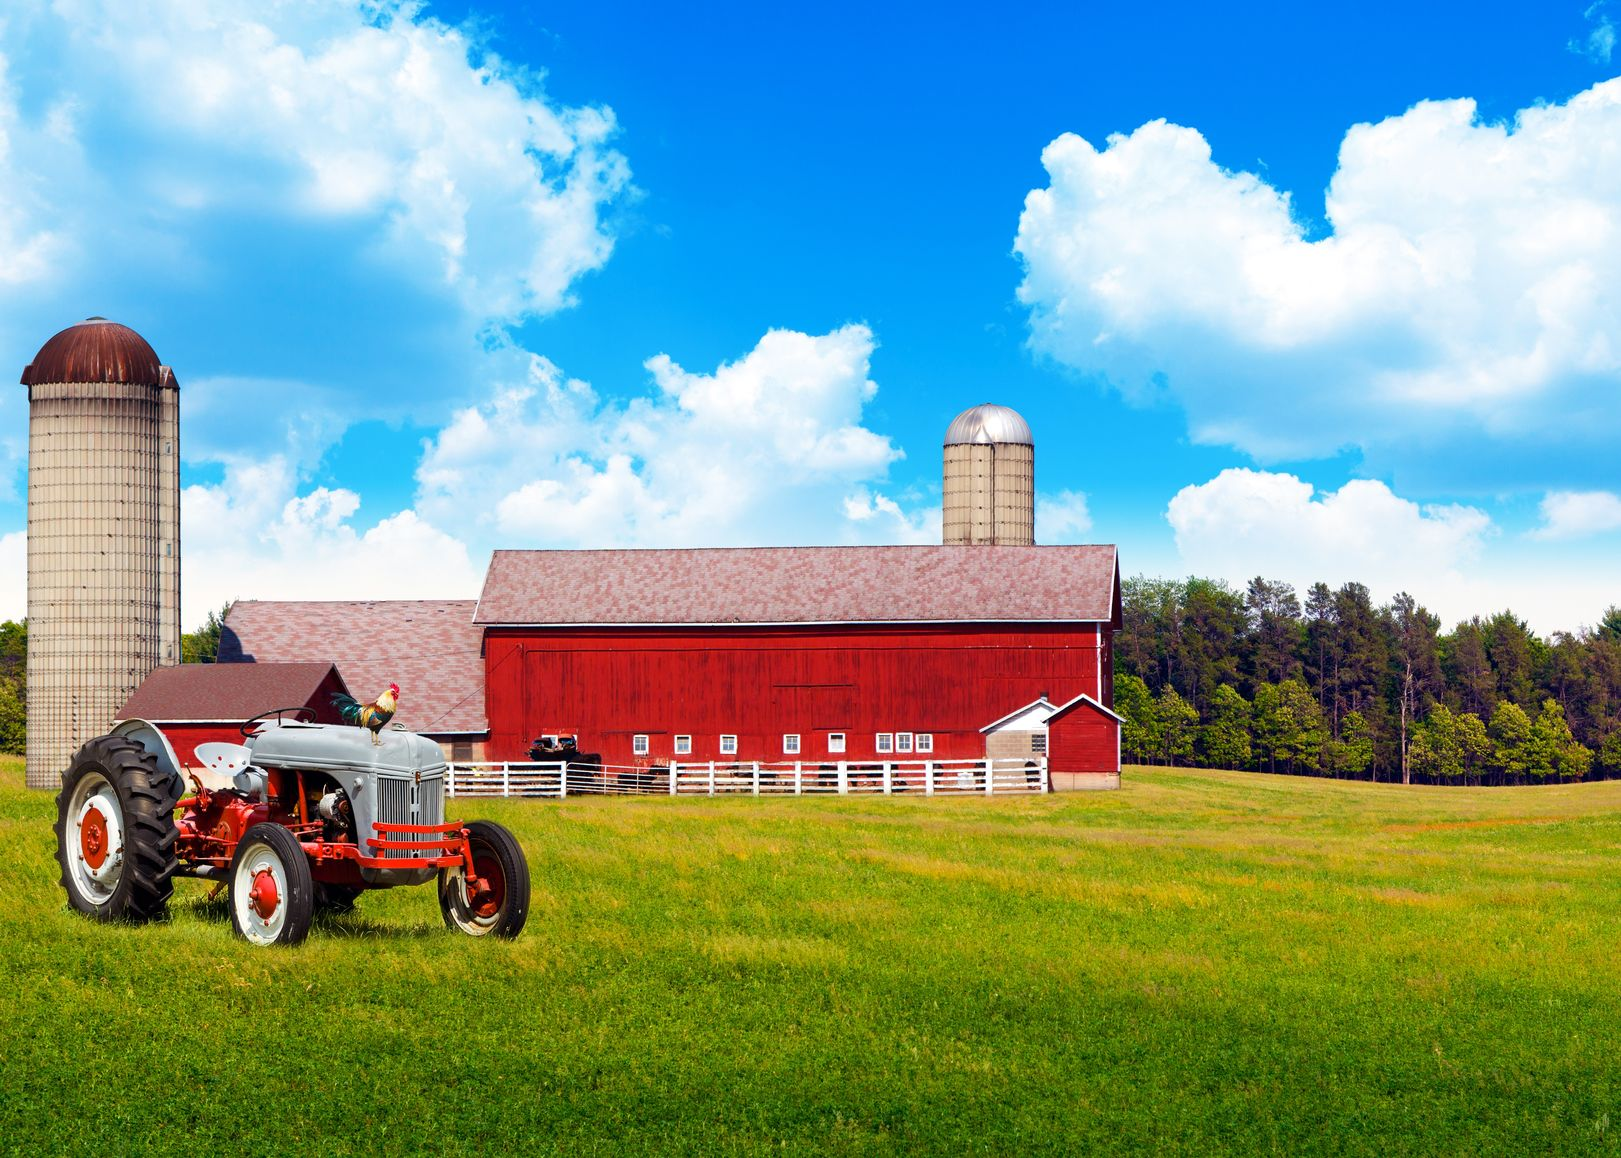 Tampa, Odessa, Lutz, FL. Farm & Ranch Insurance